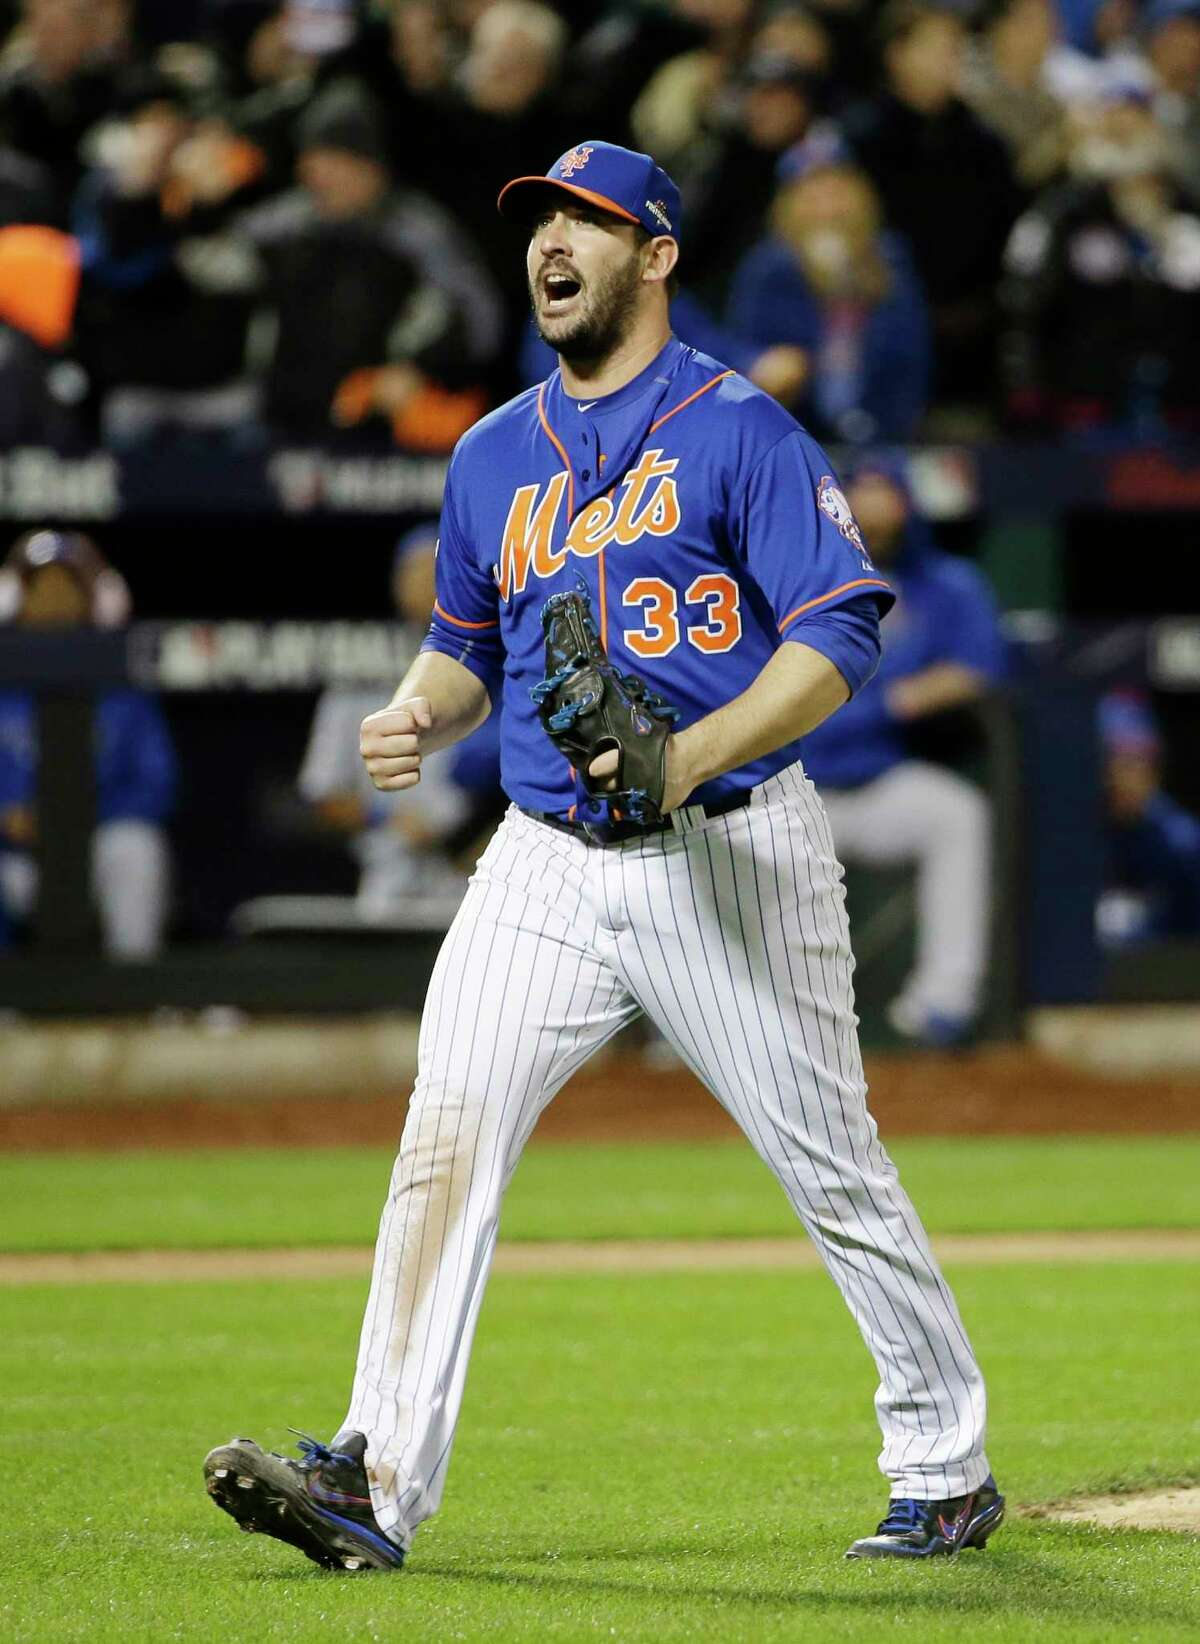 Mets pitcher Matt Harvey reacts after getting the Cubs' Tommy La Stella to strike out in the seventh inning.